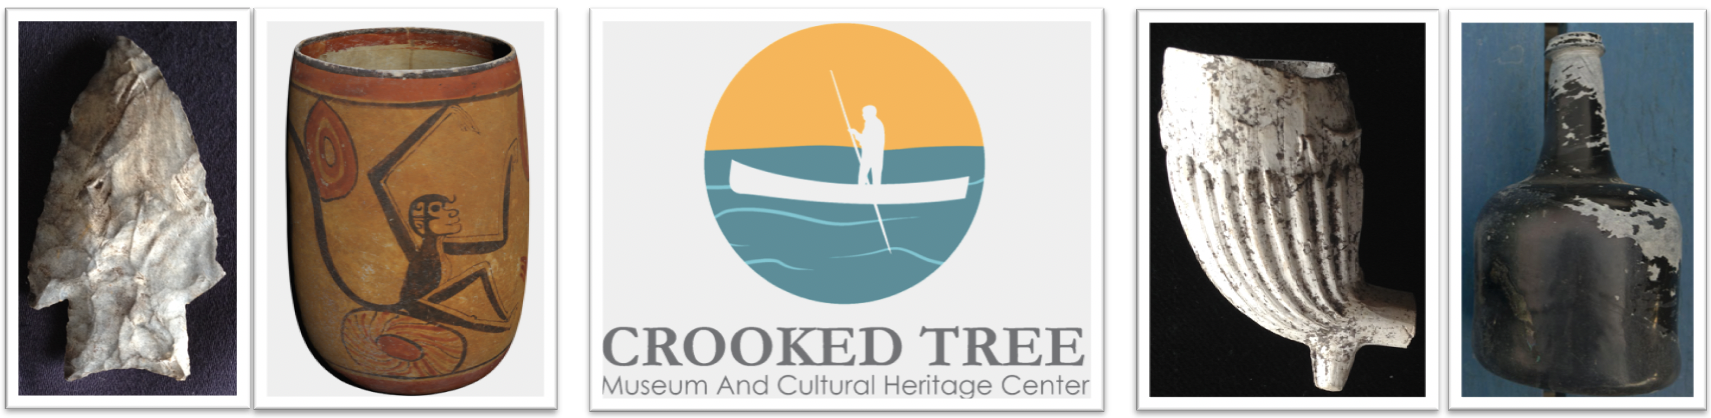 Crooked Tree Museum and Cultural Heritage Center